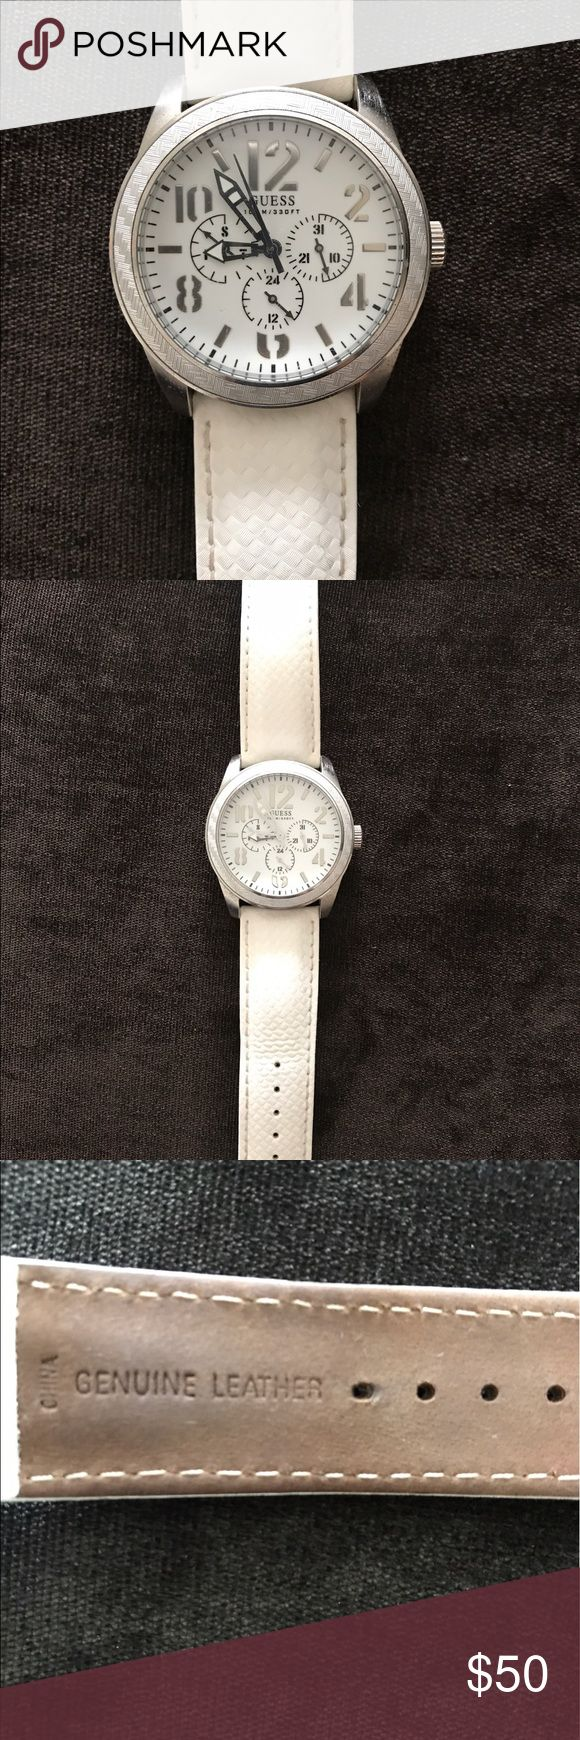 Genuine Leather White GUESS Watch Genuine Leather White GUESS Watch model U10645G2 Stainless Steel- preowned.  Watch has been worn a few times and needs a battery it is not currently ticking. Otherwise in good condition. Guess Accessories Watches